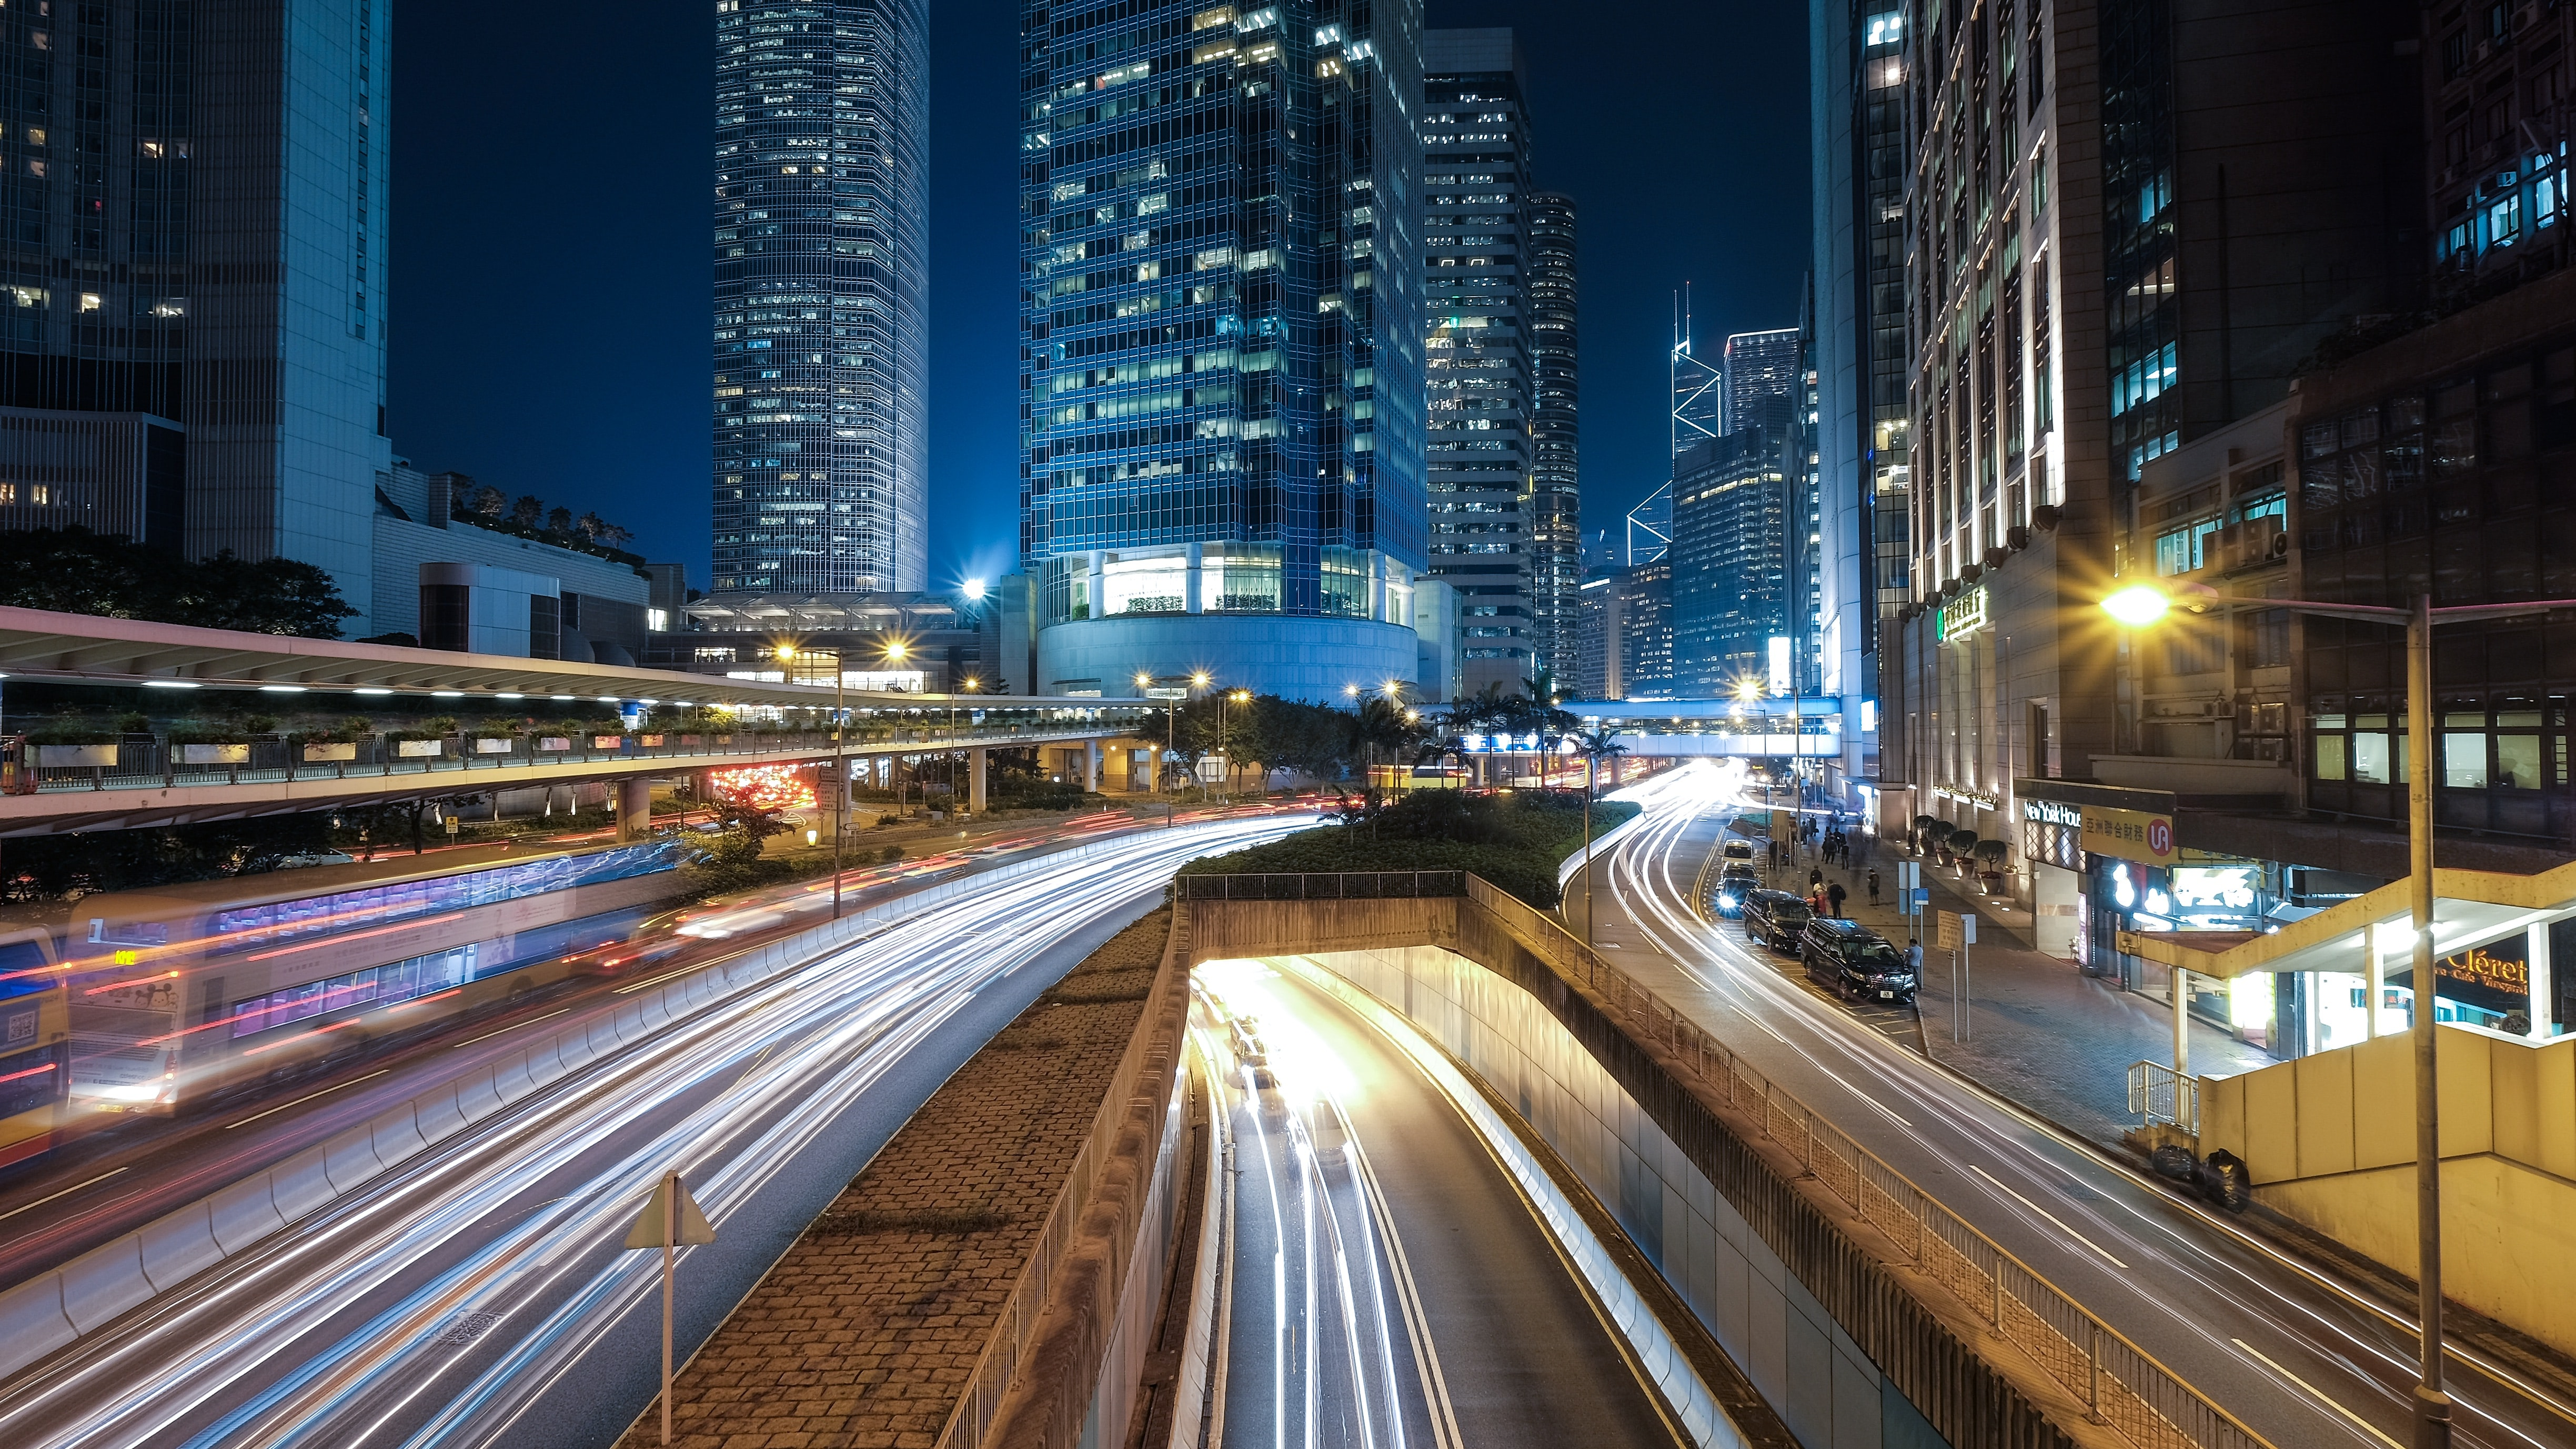 timelapse photography of cars in road during nighttime